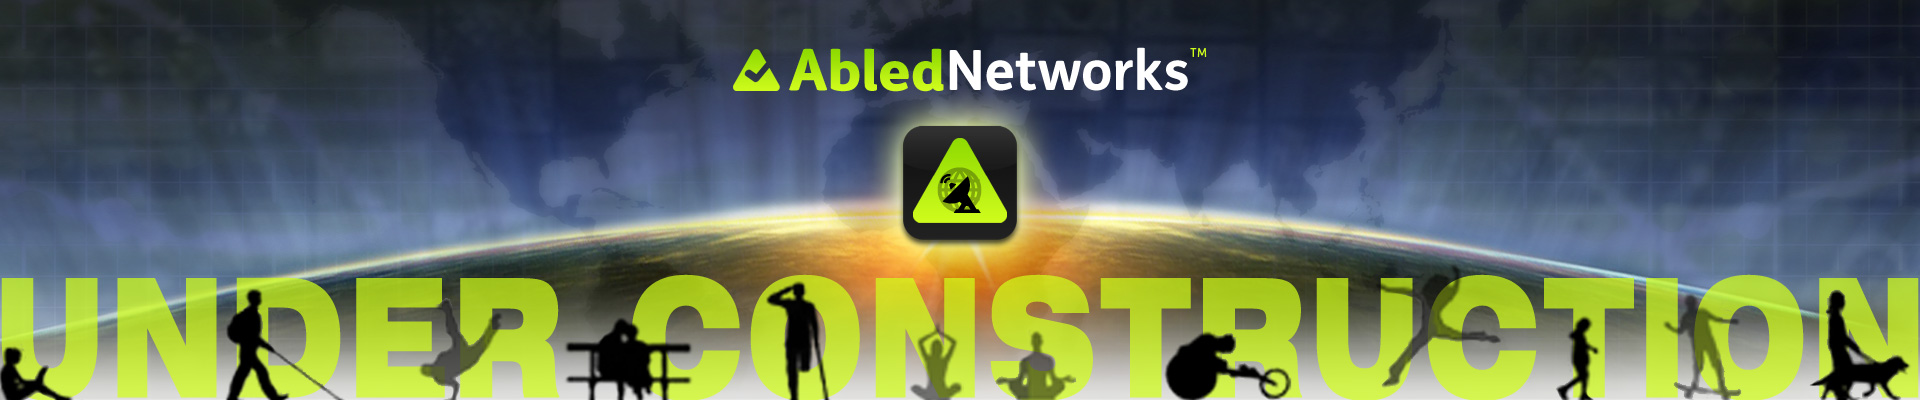 1.AbledNetworks-Under-Contruction-Banner-1920x400